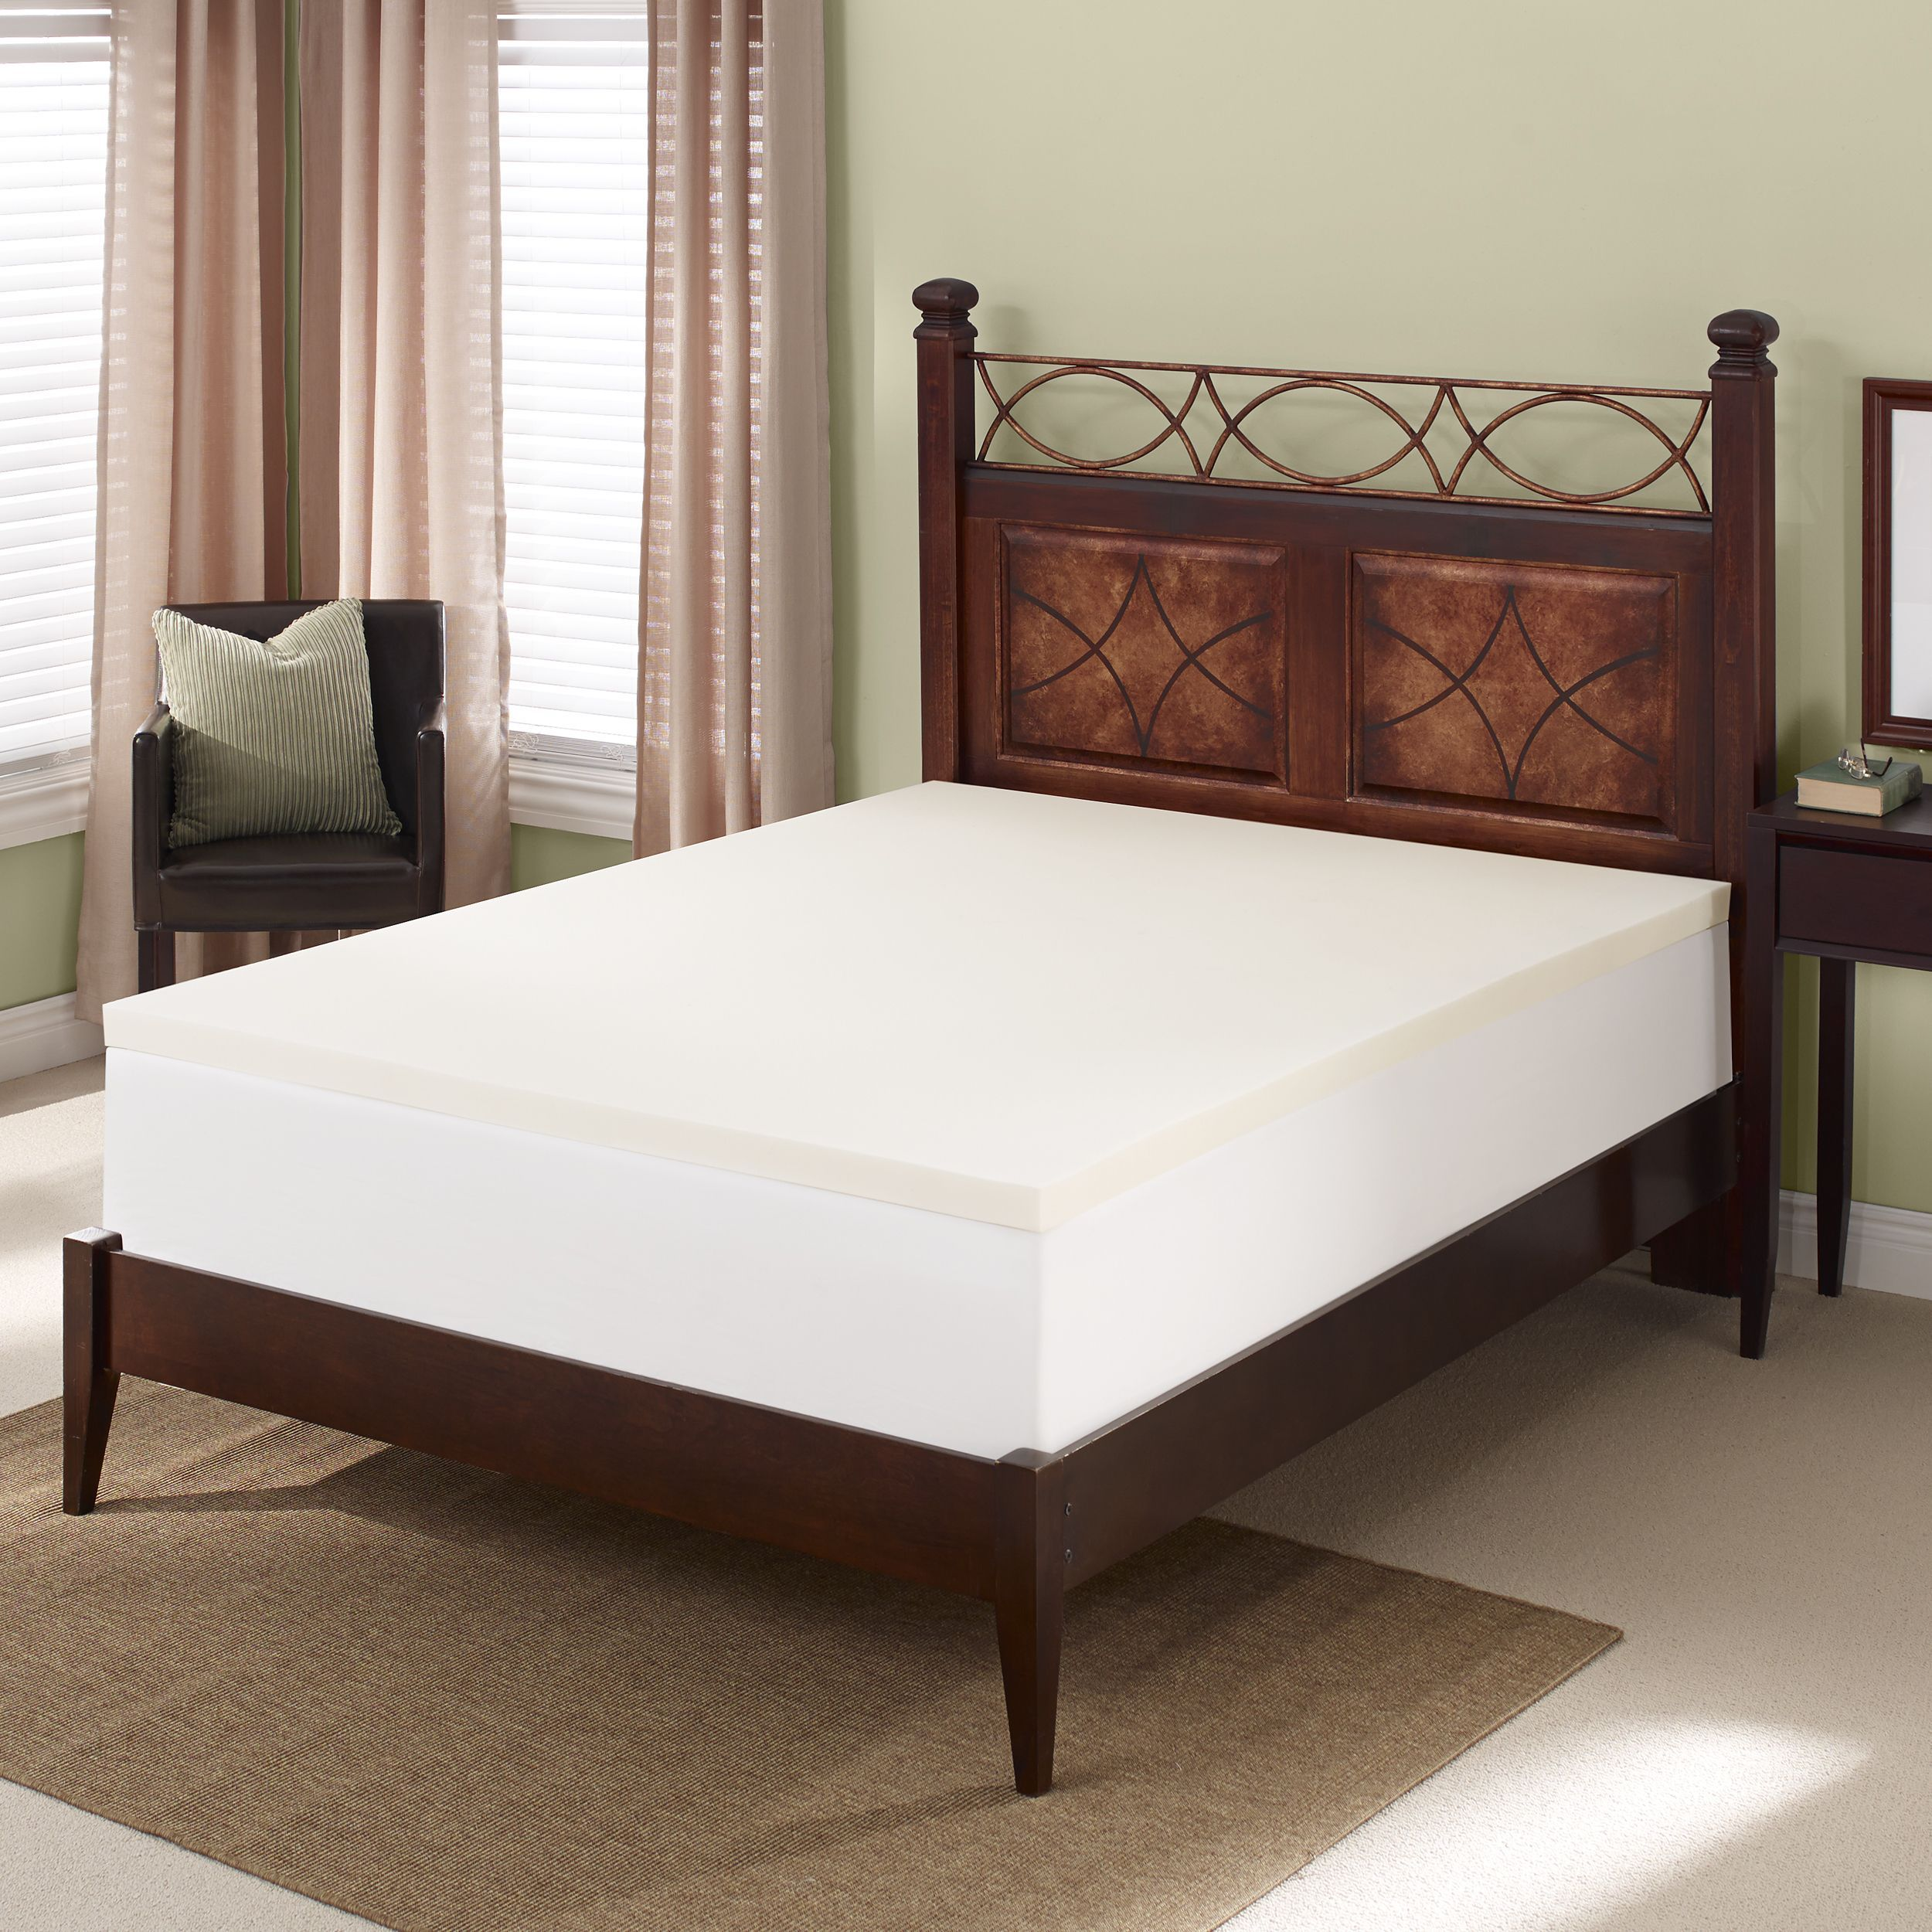 Get a good night of sleep with this comfortable Serta